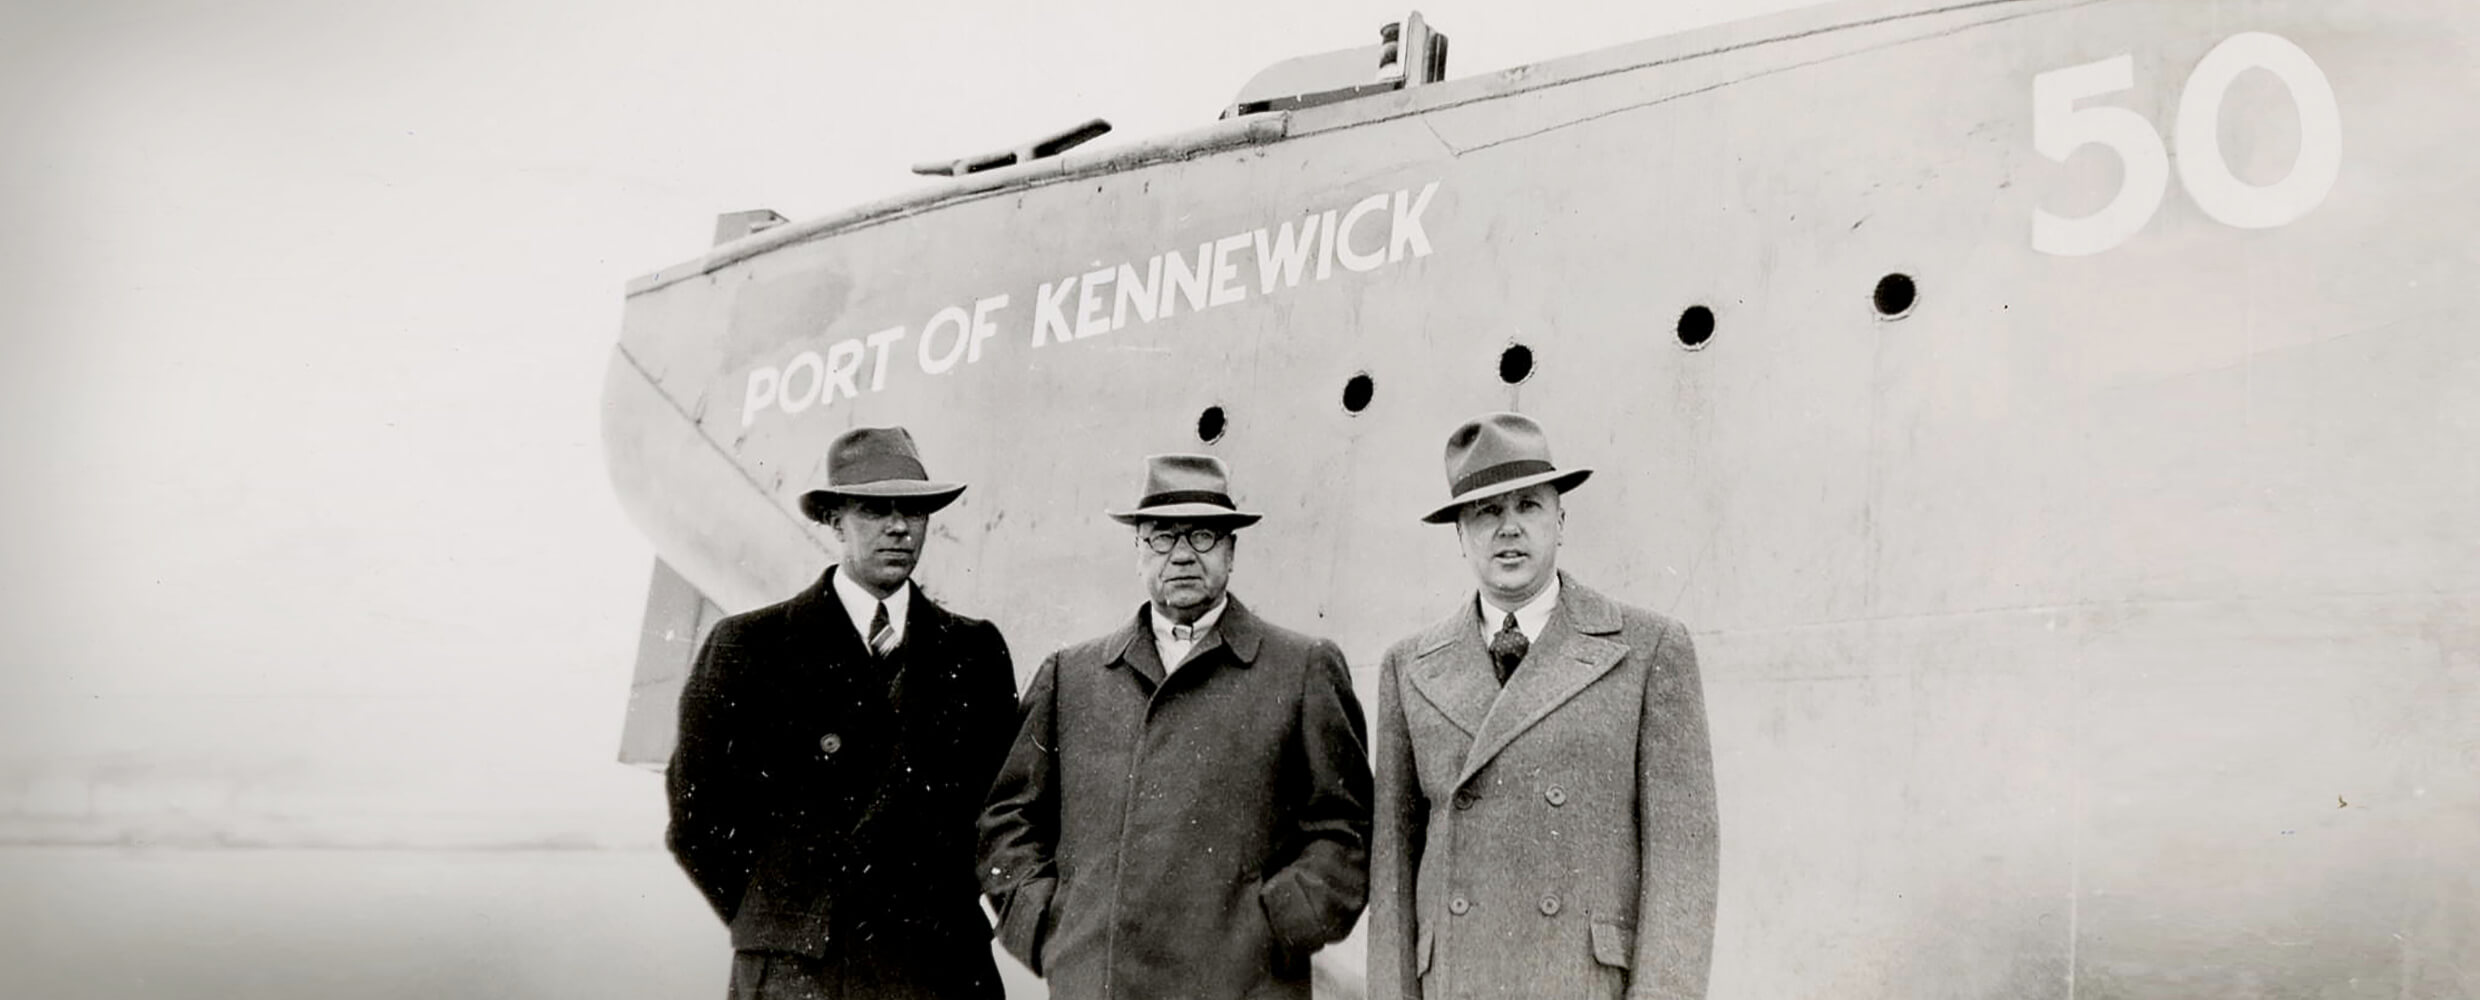 Commissioners attending the Port of Kennewick barge launch ceremony, 1950s.